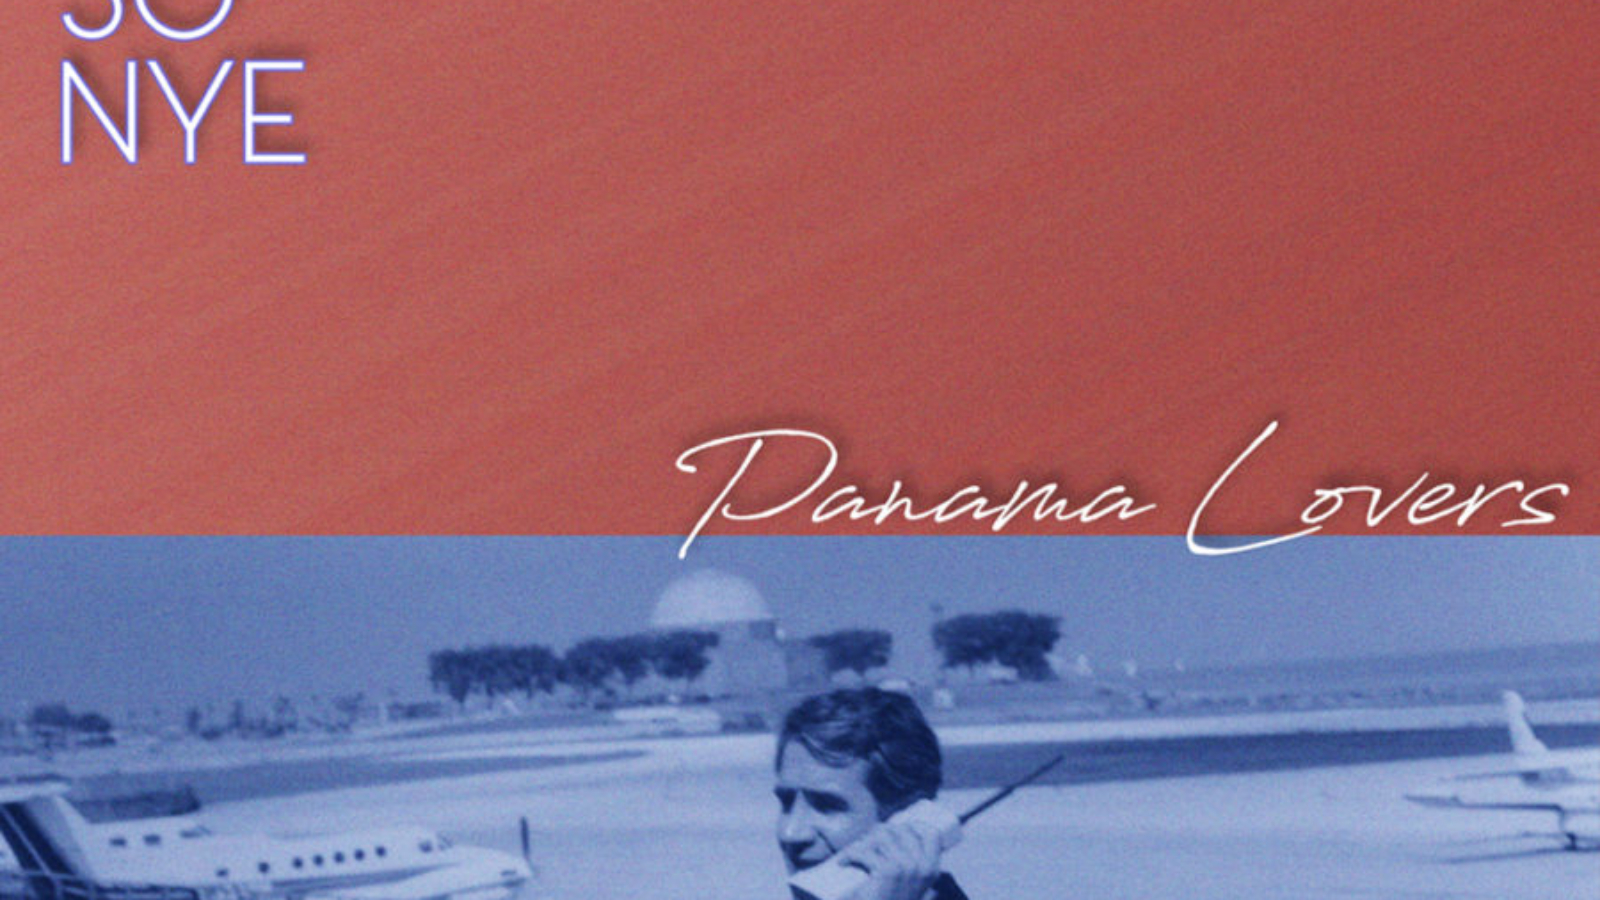 Arsonye_Panama_Lovers_Cover